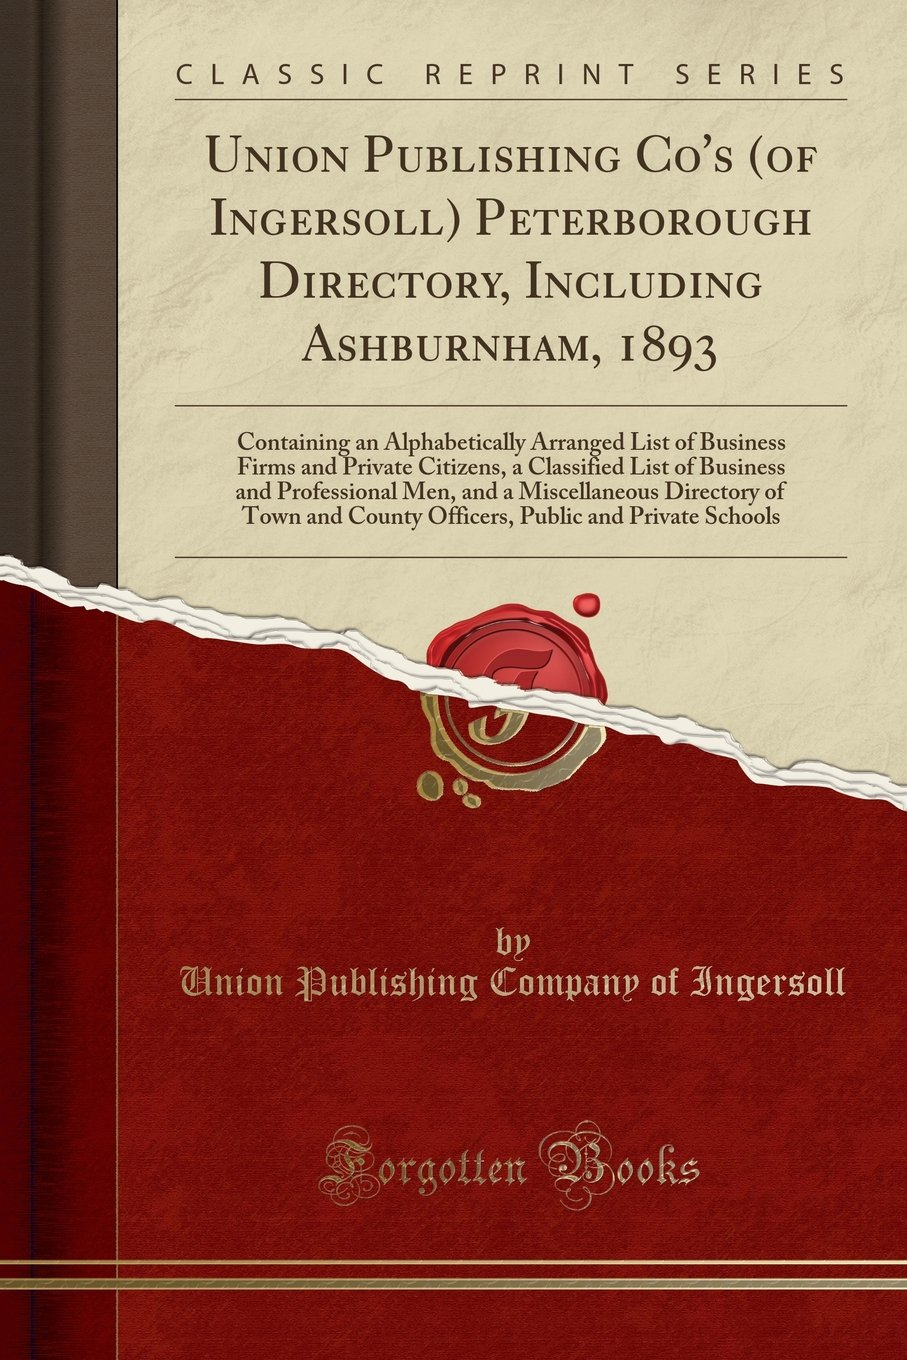 Union Publishing Co's (of Ingersoll) Peterborough Directory, Including Ashburnham, 1893: Containing an Alphabetically Arranged List of Business Firms ... Men, and a Miscellaneous Directory O pdf epub